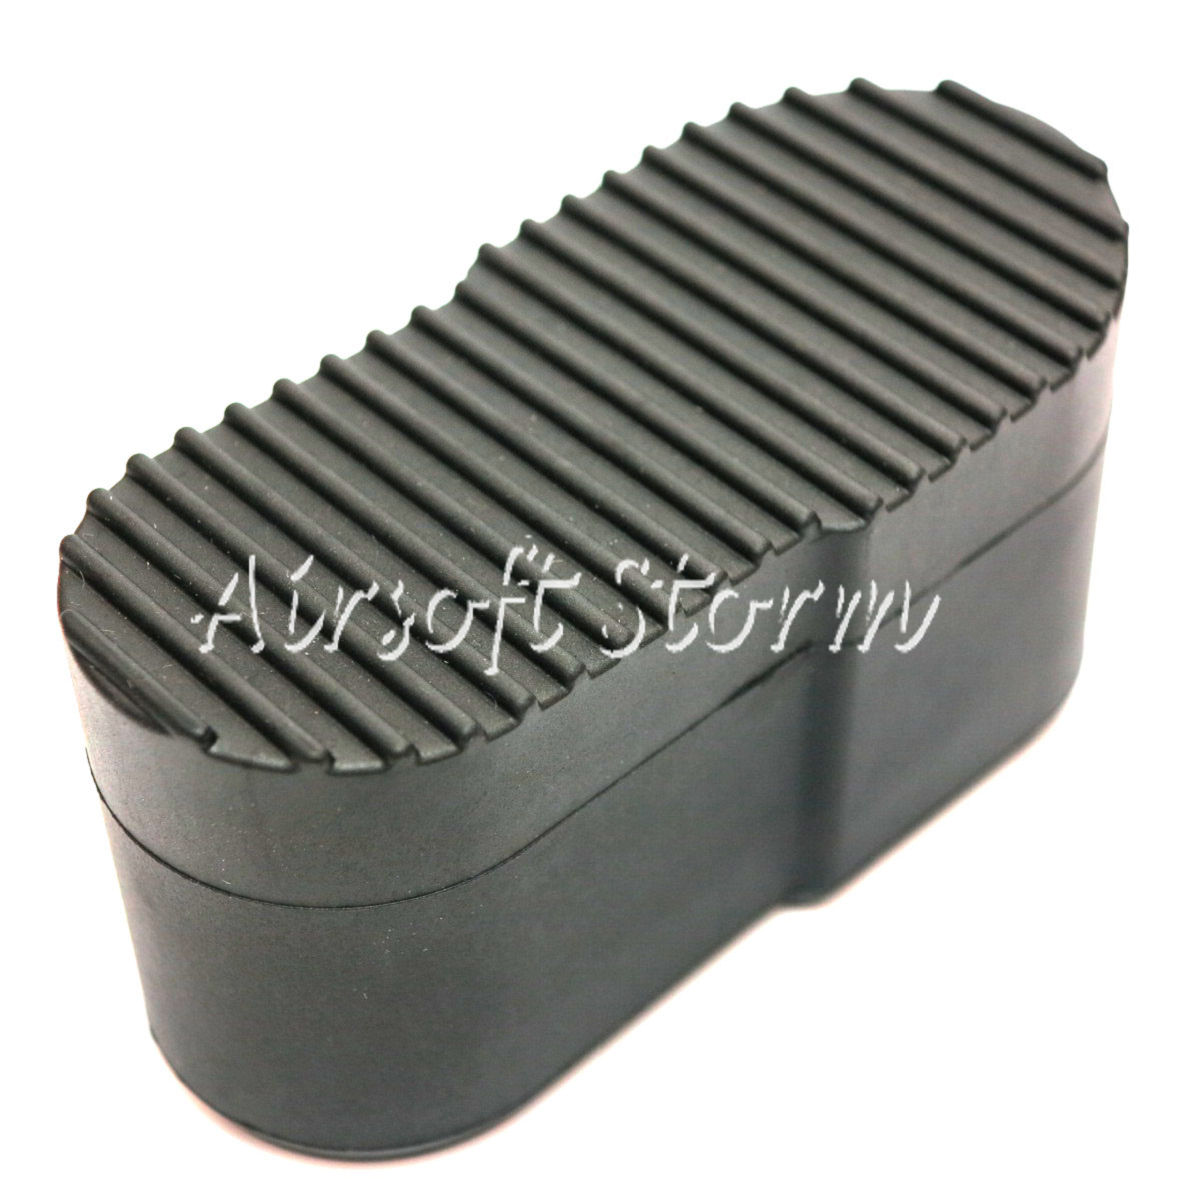 Airsoft AEG Wargame Shooting Gear Rubber PVC Stock Butt Plate For P90